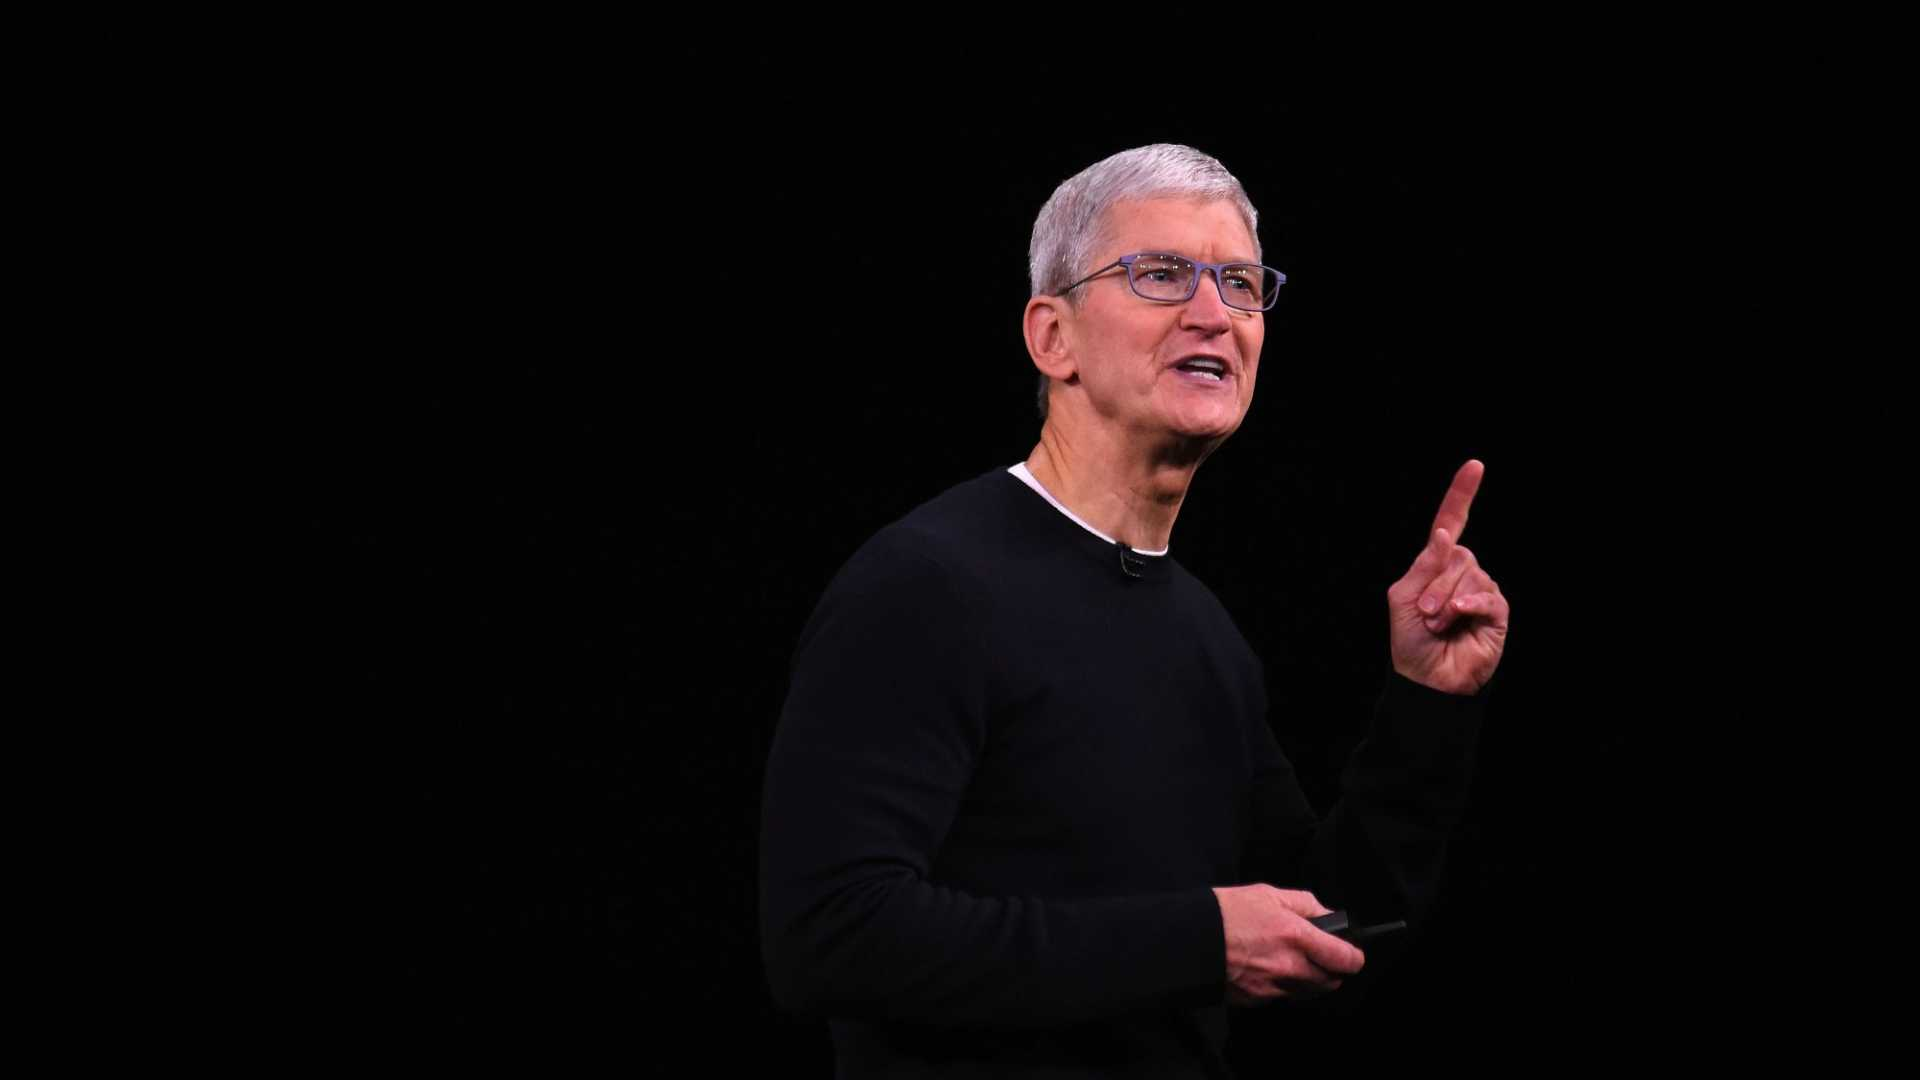 I Almost Fell Asleep During the Apple Keynote. Then Something Truly Extraordinary Happened